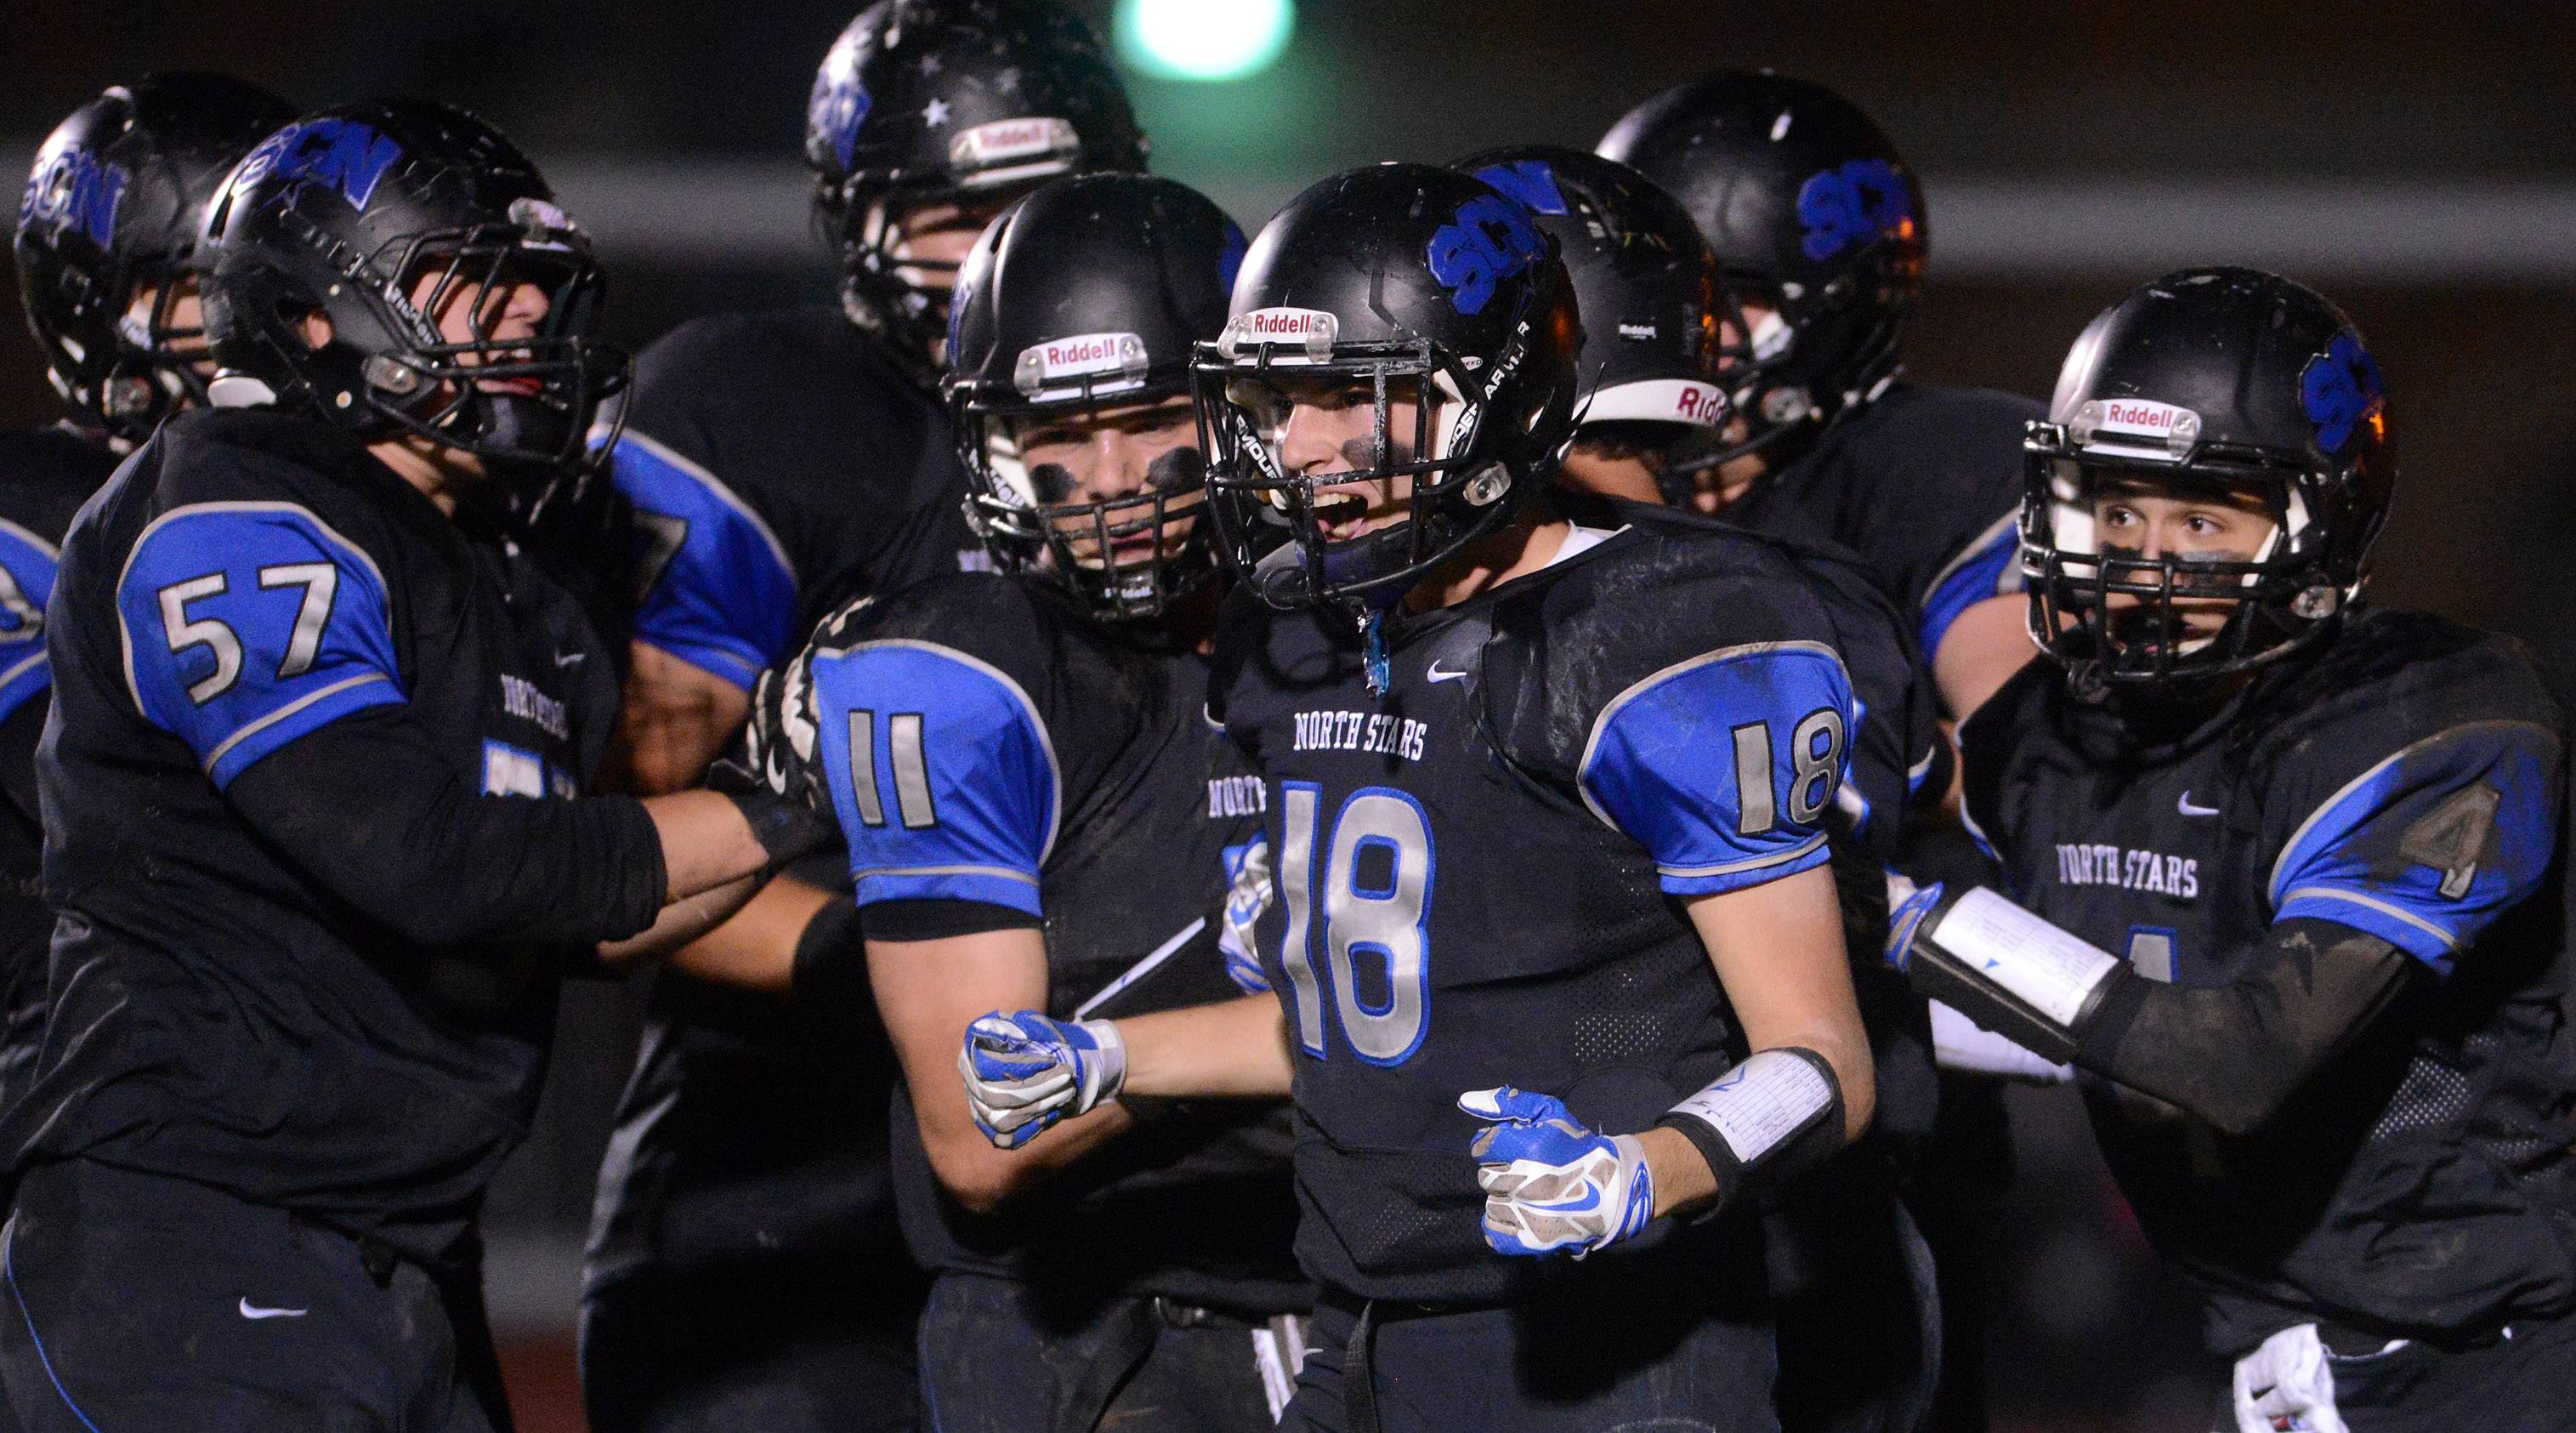 St. Charles North's Blake Kastein and his teammates celebrate one of the North Stars four first-half touchdowns against St. Charles East .